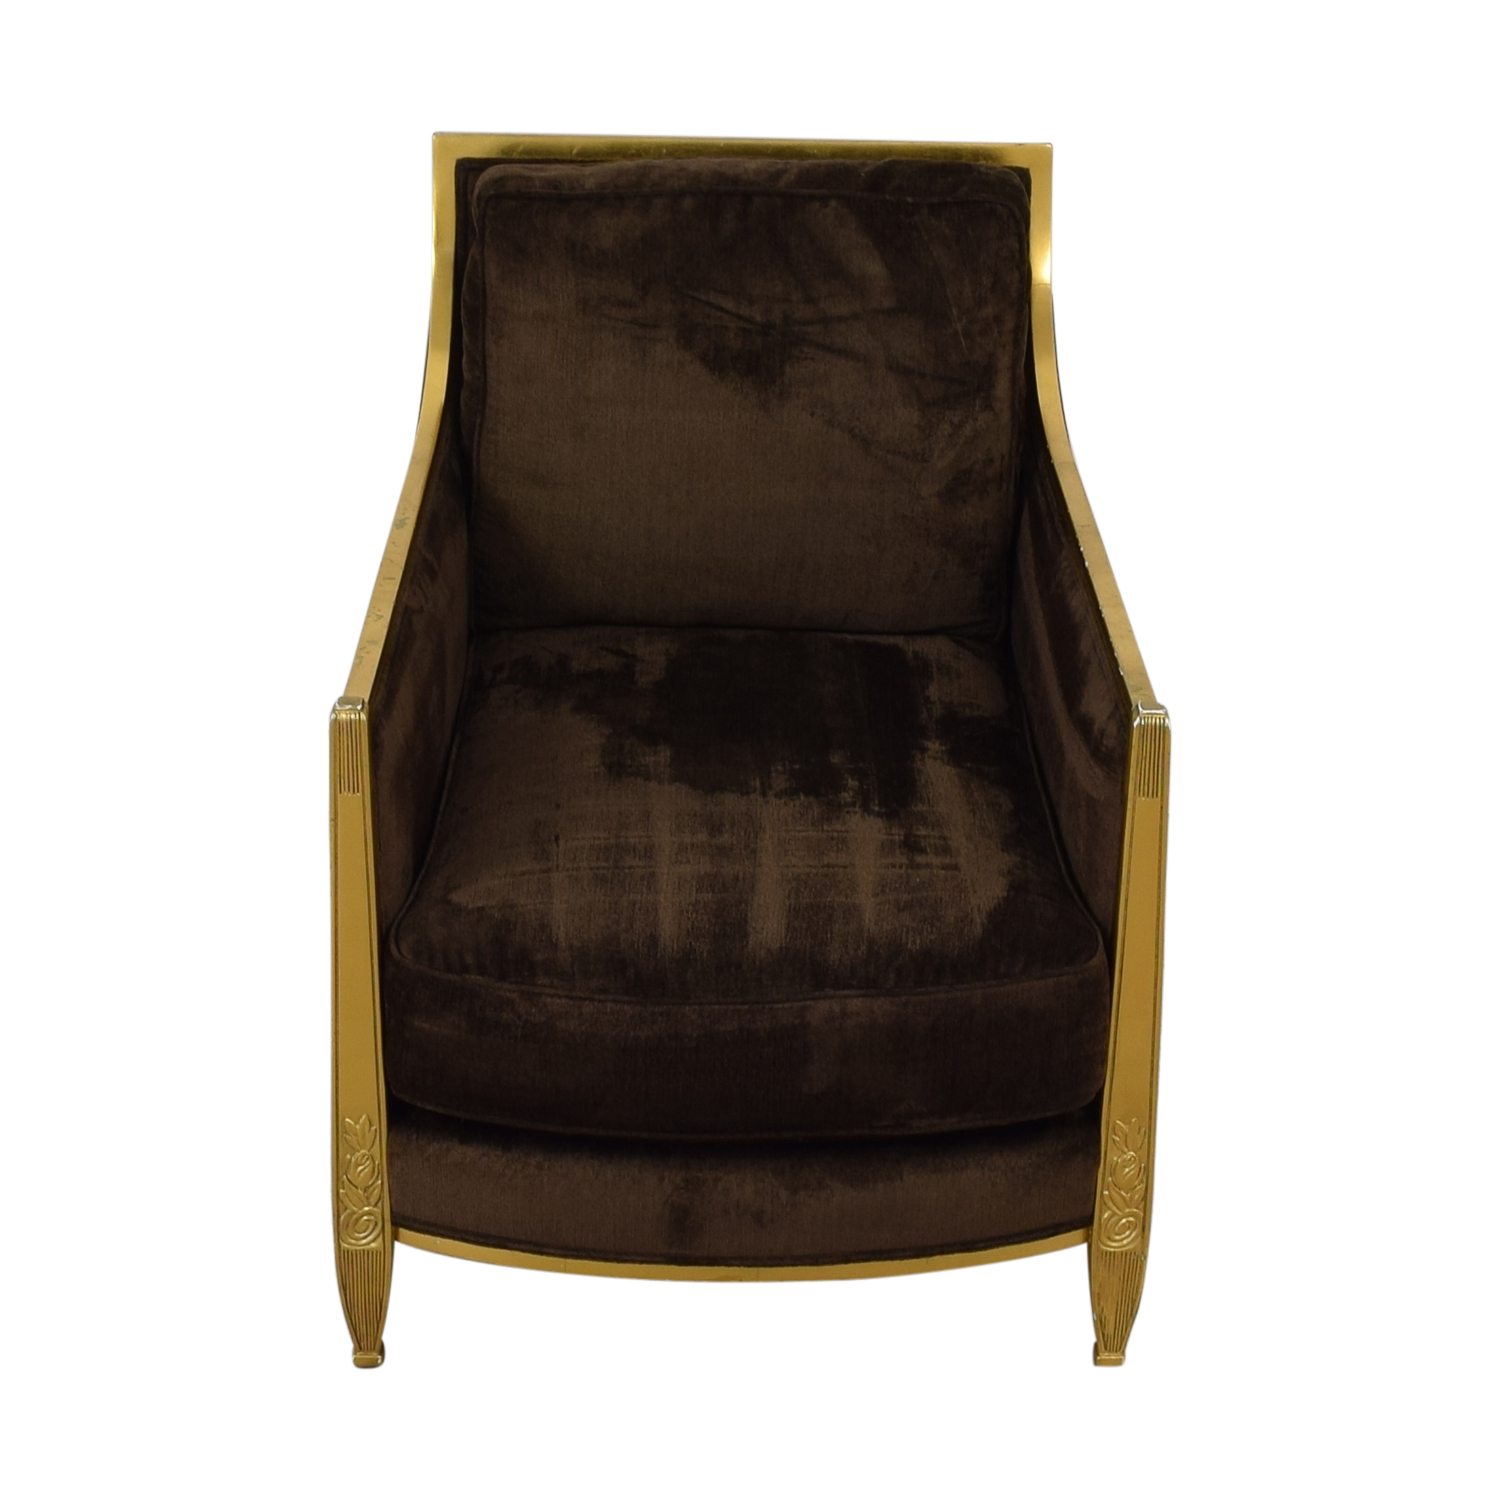 Interior Crafts Interior Crafts Accent Chair dimensions